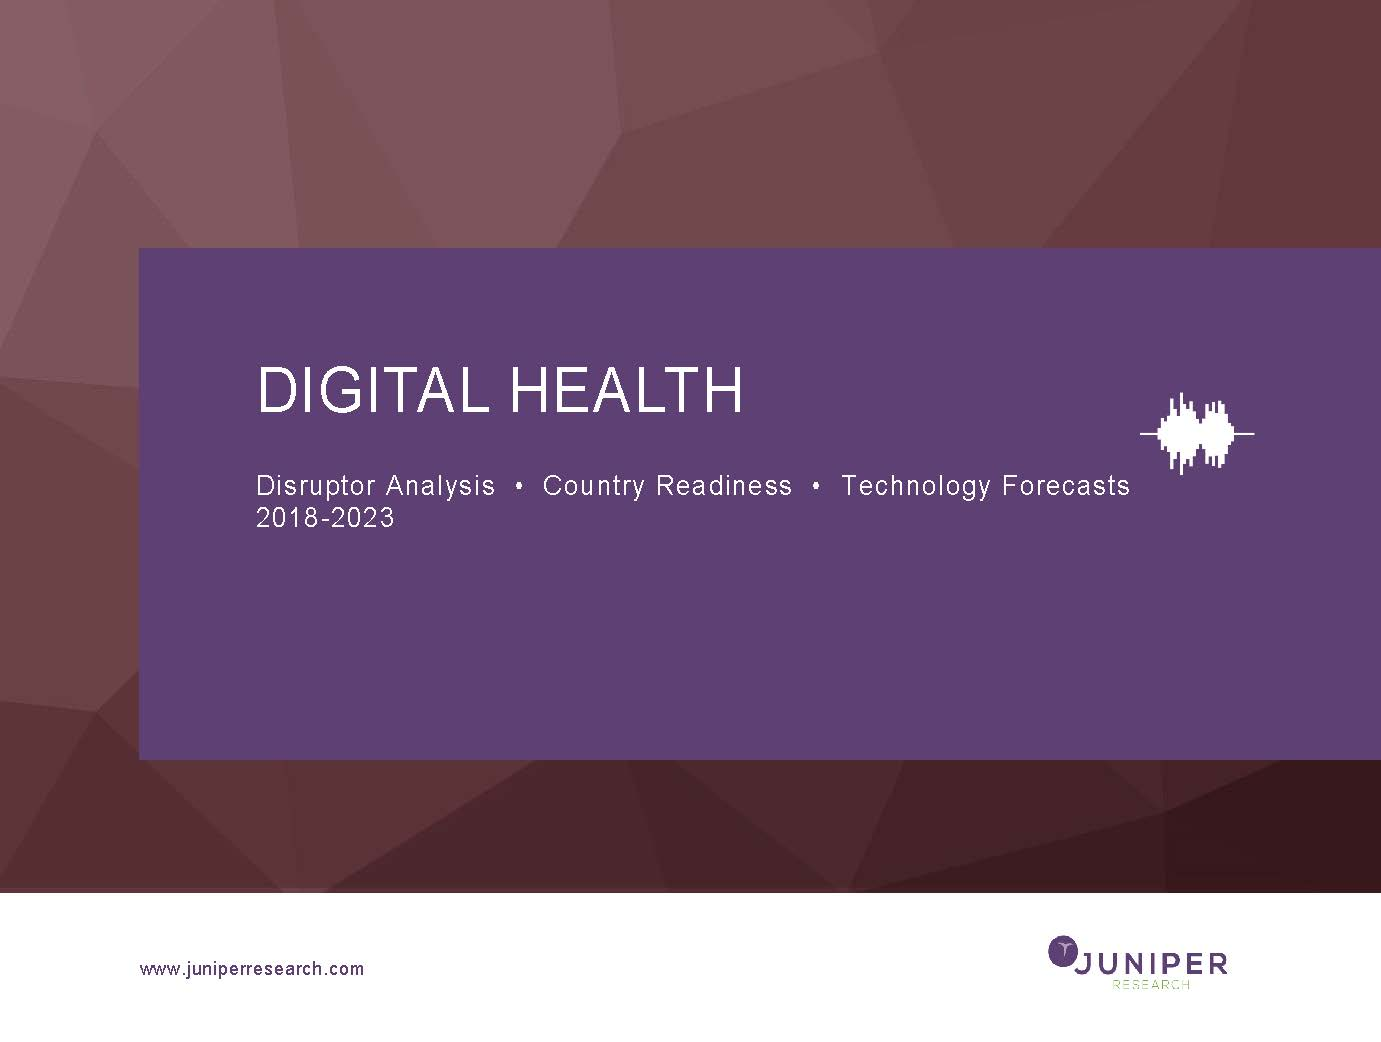 Digital Health: Disruptor Analysis, Country Readiness & Technology Forecasts 2018-2023